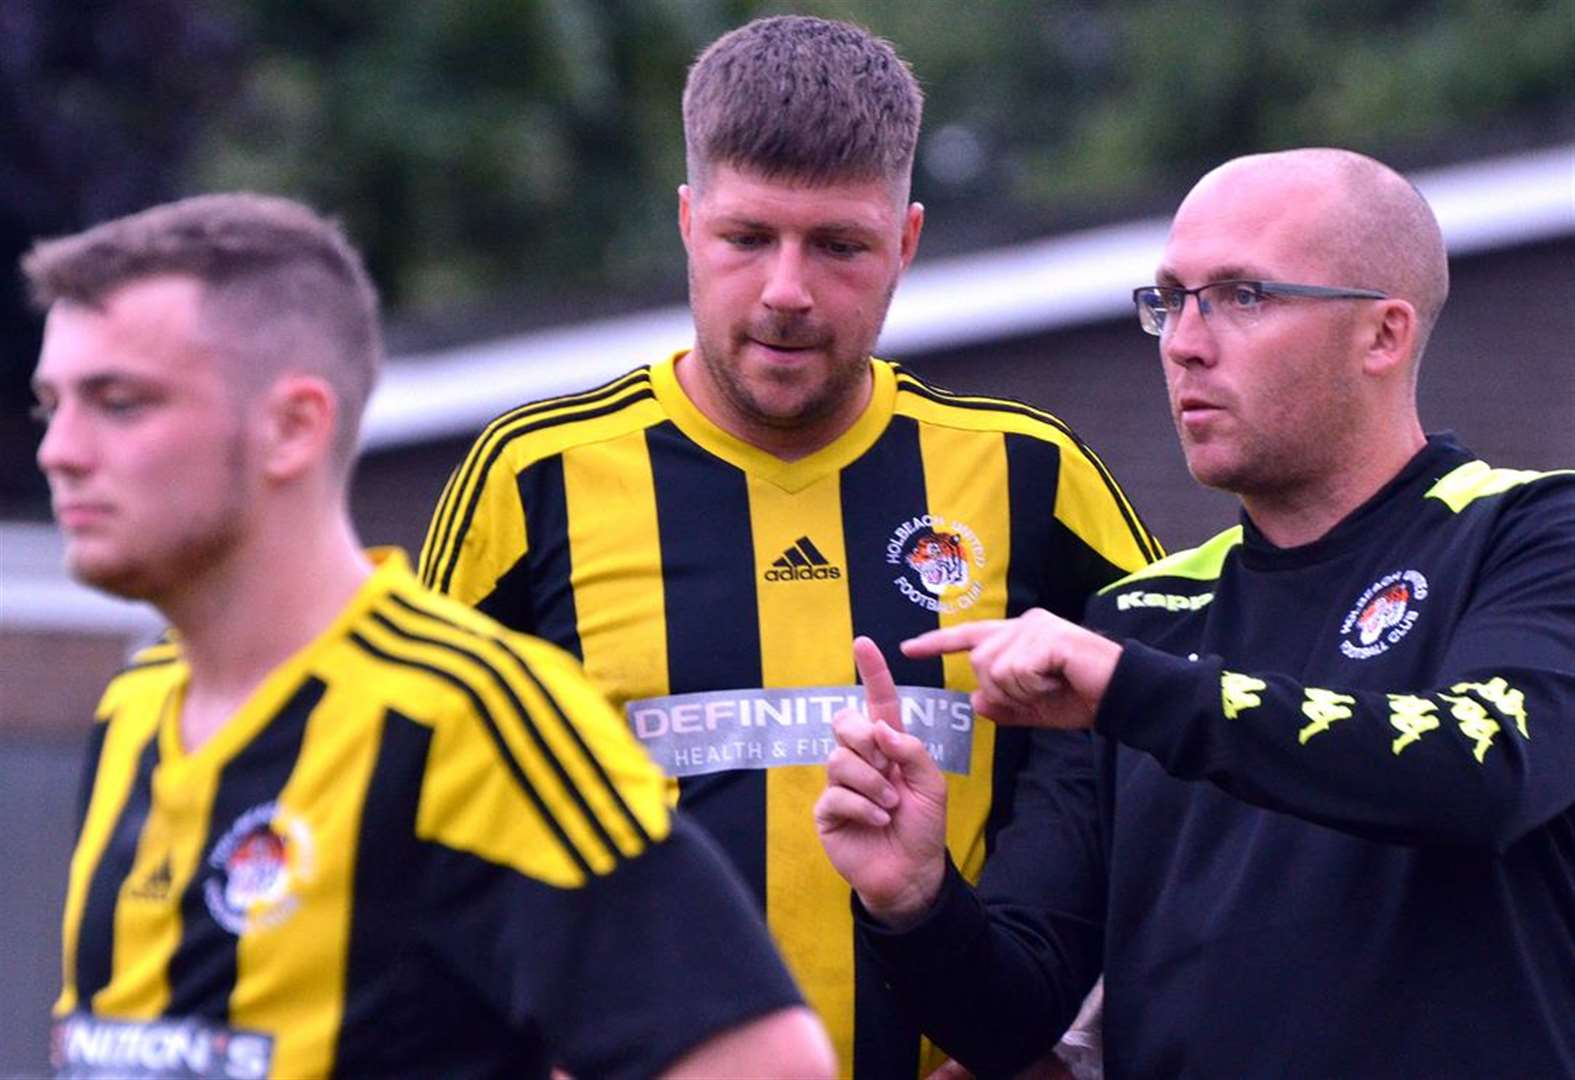 FOOTBALL: Holbeach United boss looks at changes